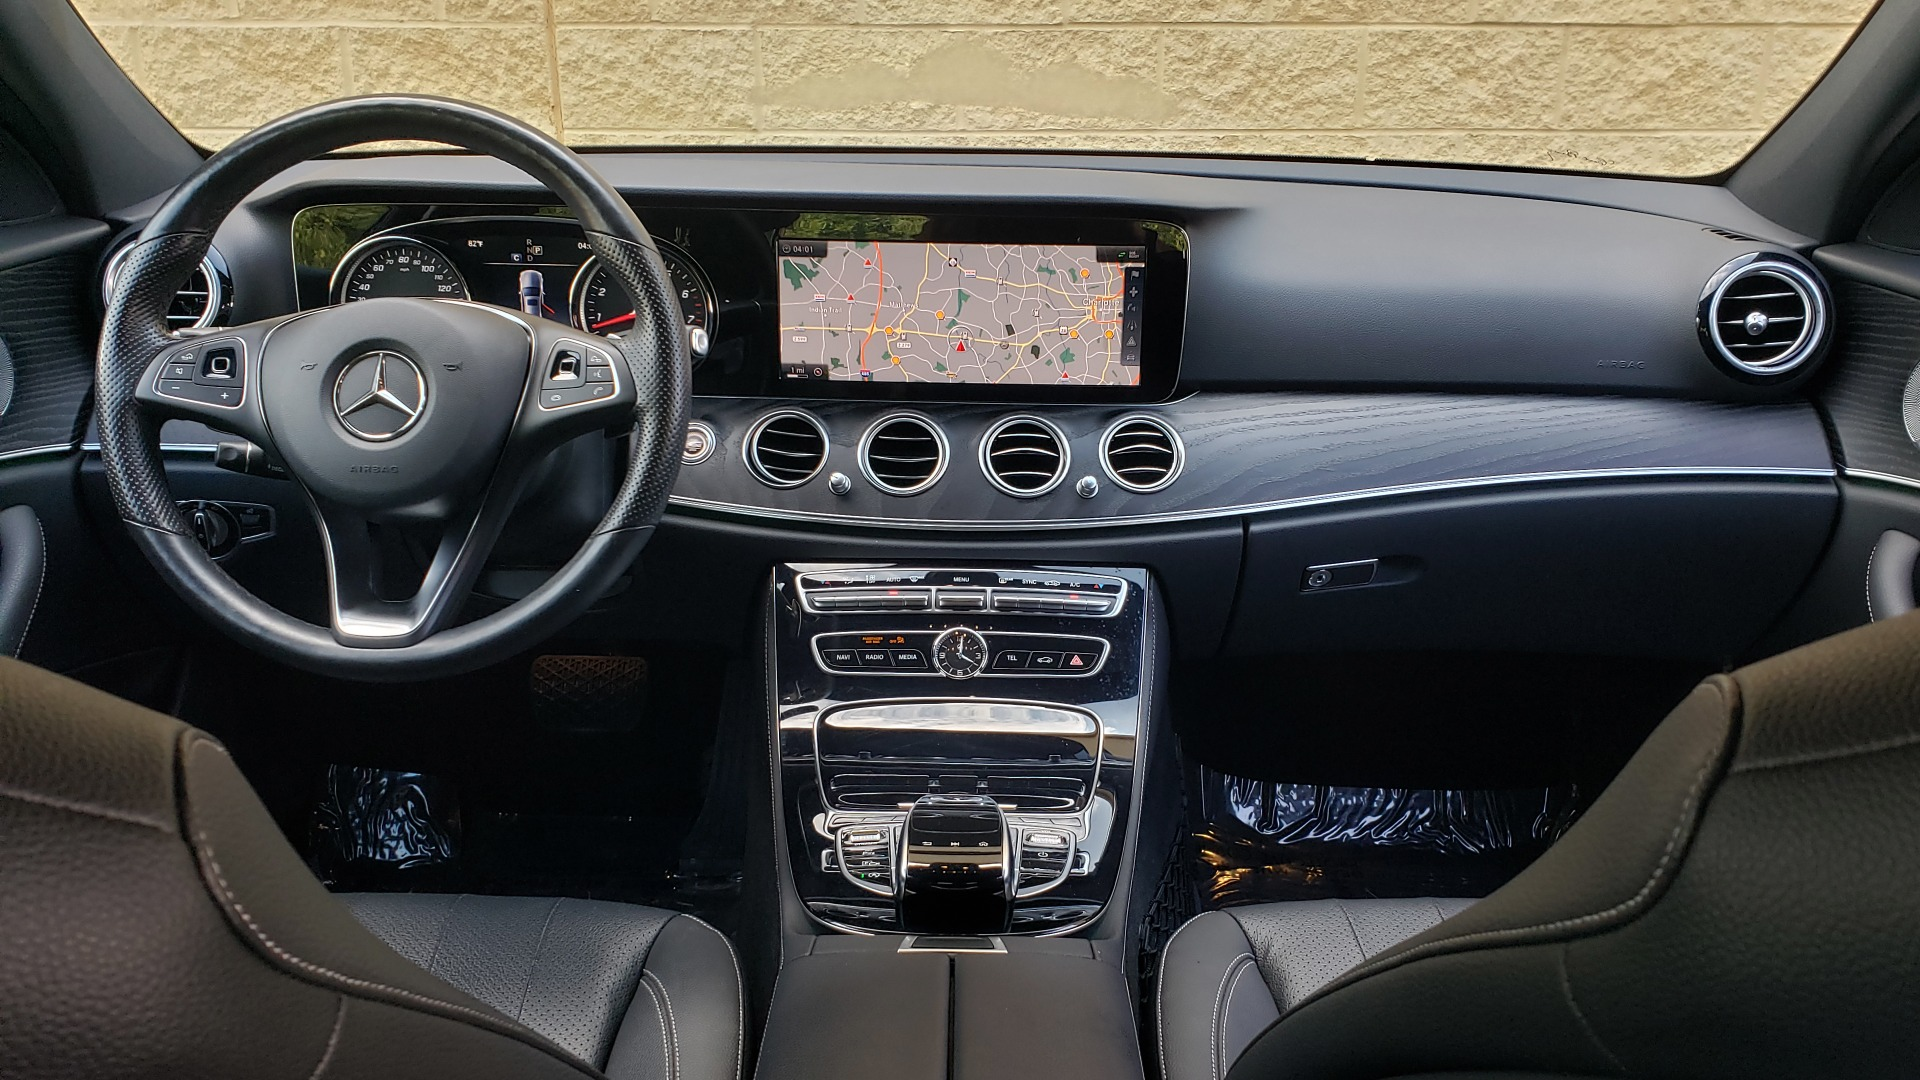 Used 2017 Mercedes-Benz E-CLASS E 300 SPORT / NAV / SUNROOF / HTD STS / BURMESTER / REARVIEW for sale Sold at Formula Imports in Charlotte NC 28227 77